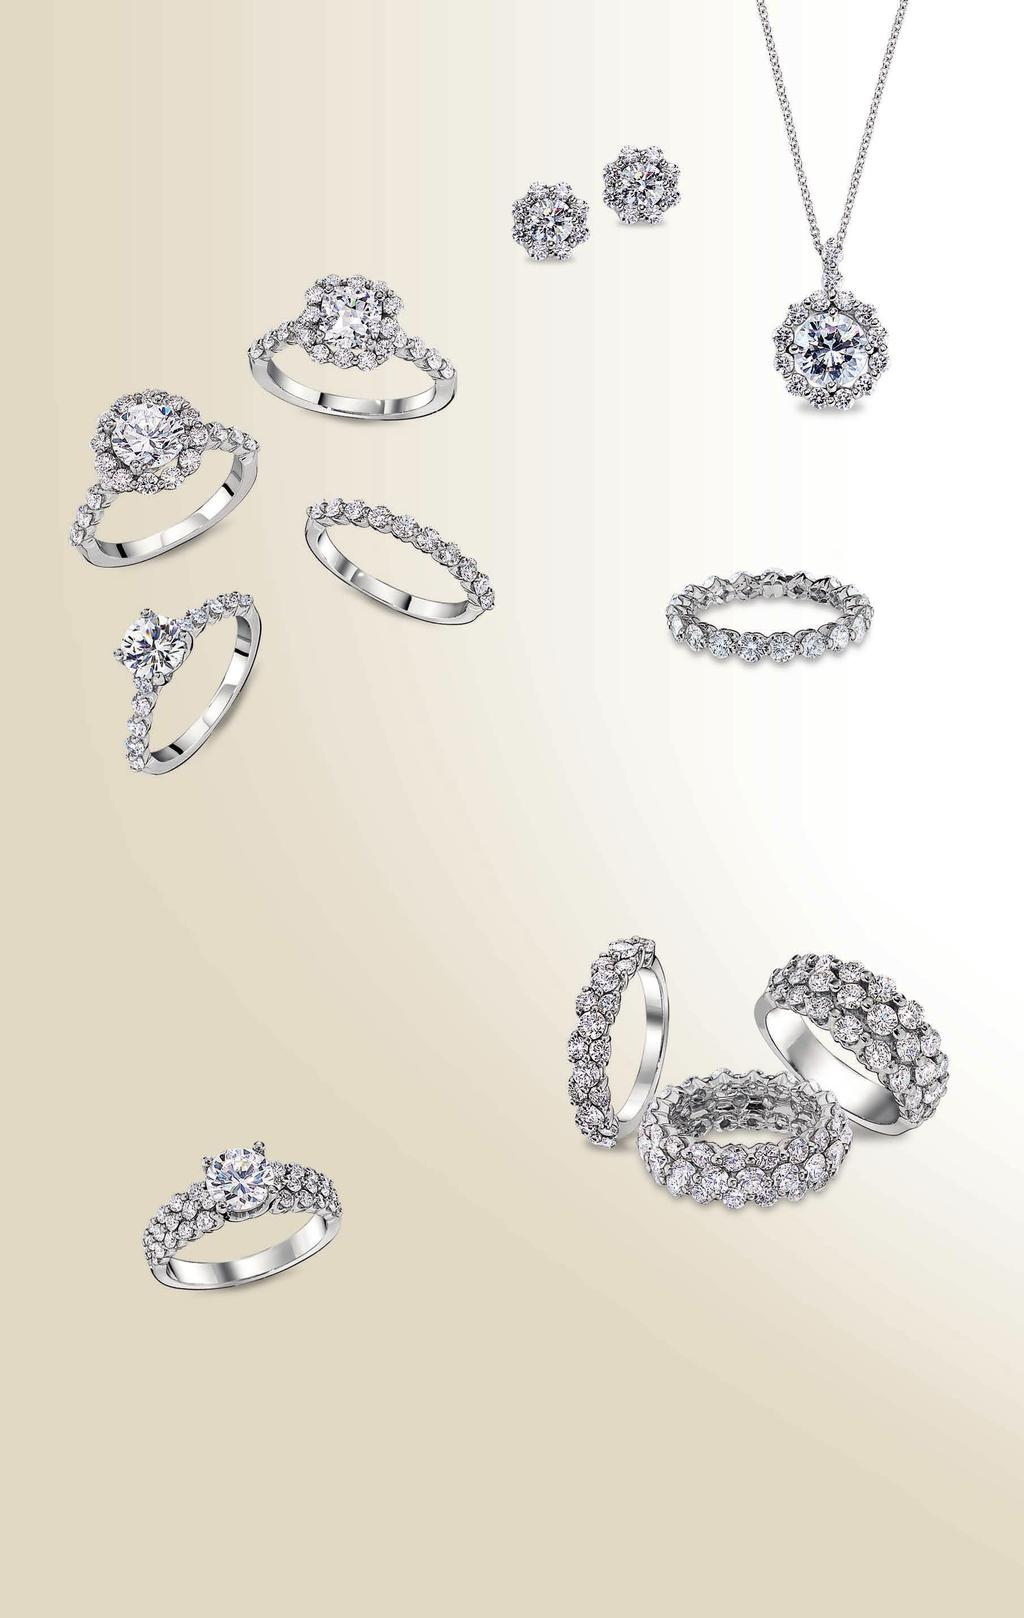 G A H K I J A. Royal Prong cushion halo engagement ring*, $3,350. Royal Prong round halo engagement ring*, $4,080. Royal Prong engagement ring*, $2,690. Royal Prong diamond band, $2,360.